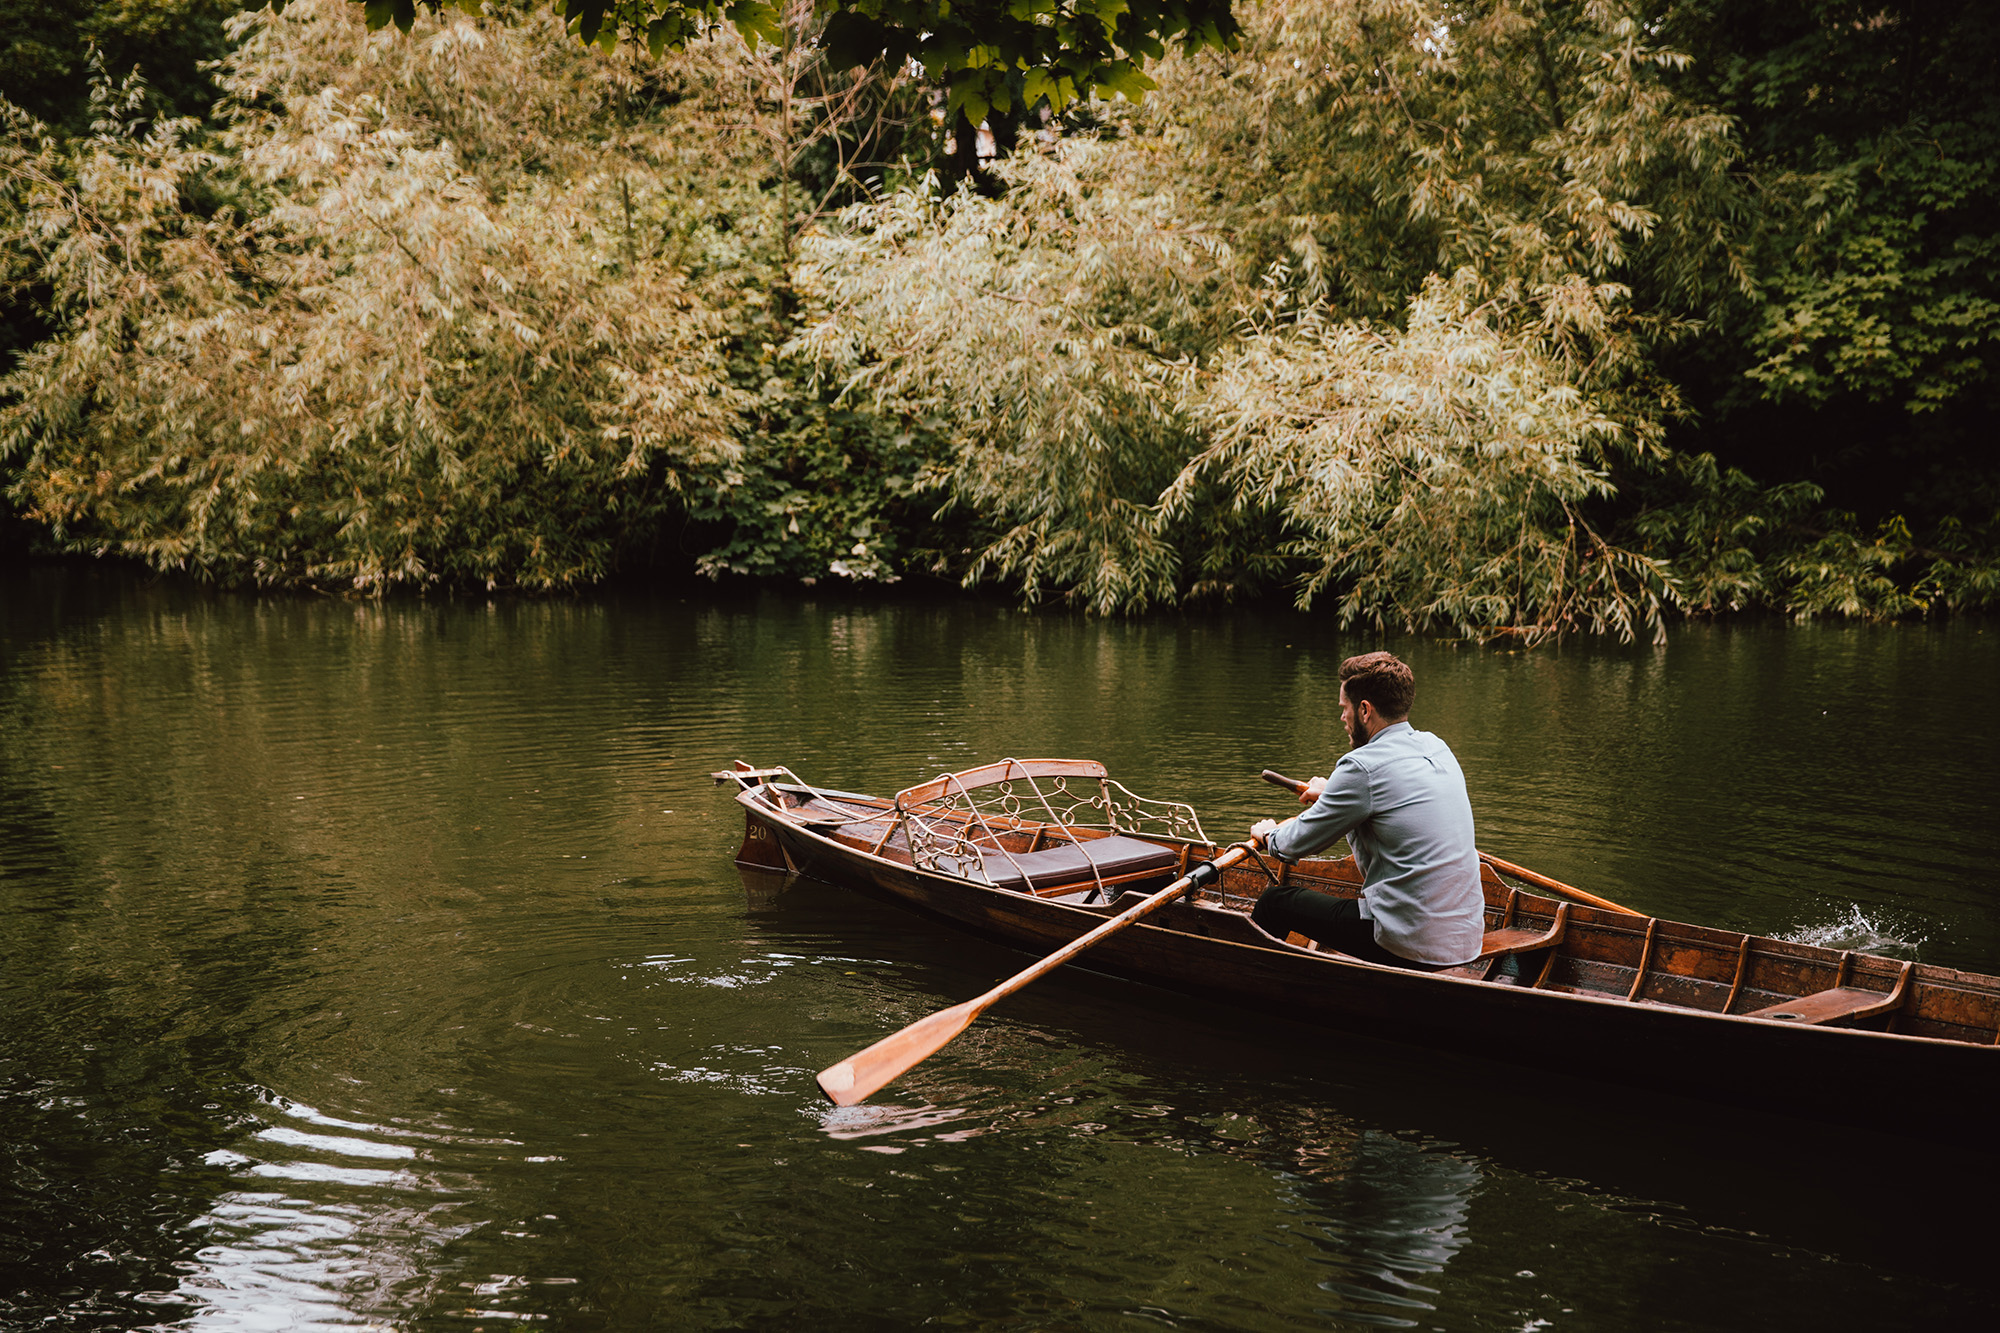 13 - Rowing down canal (10 of 11).jpg